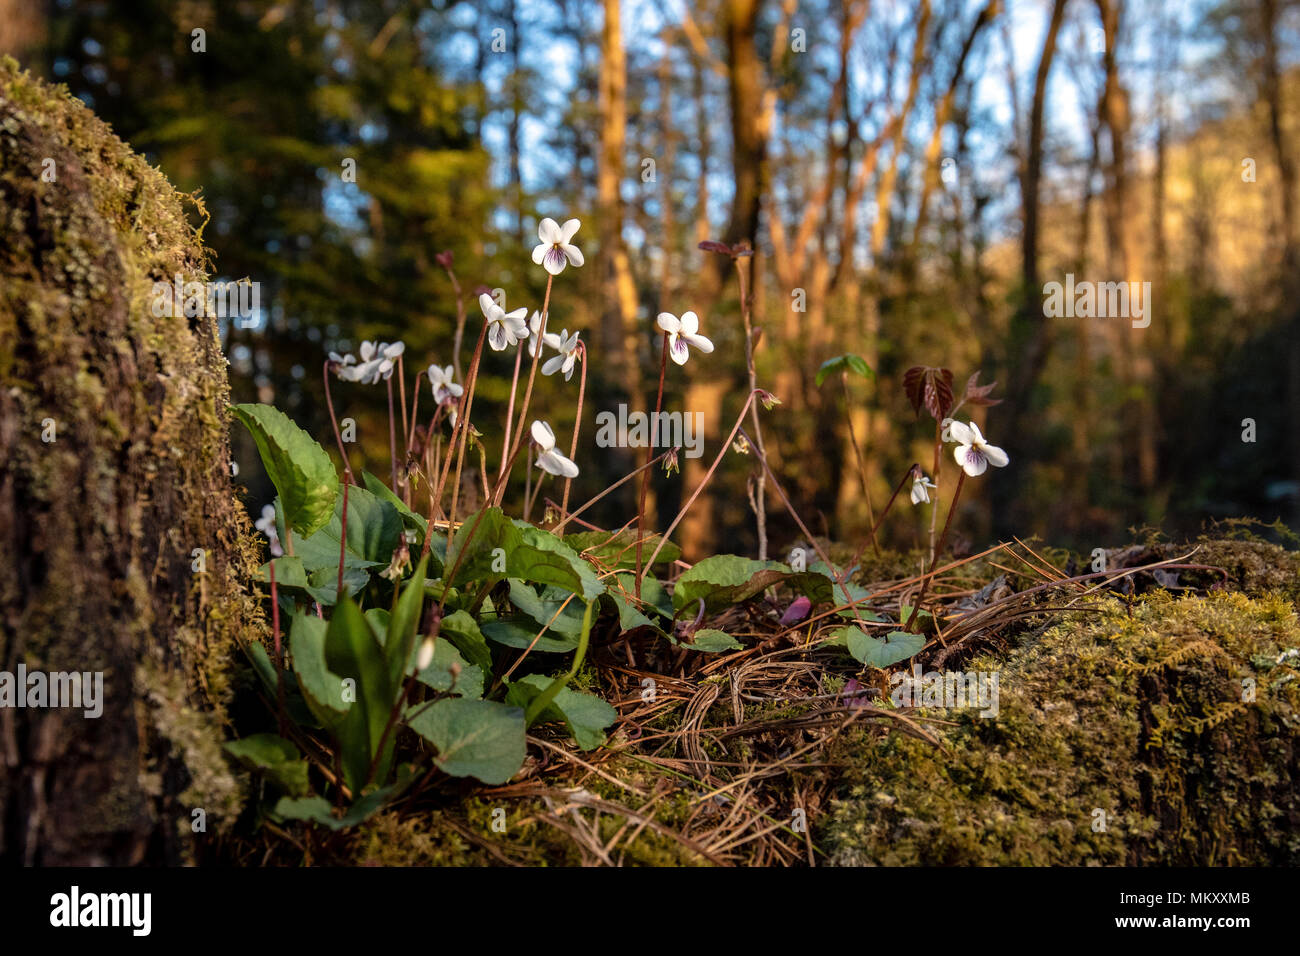 Sweet White Violet (Viola blanda) -Holmes Educational State Forest, Hendersonville, North Carolina, USA - Stock Image